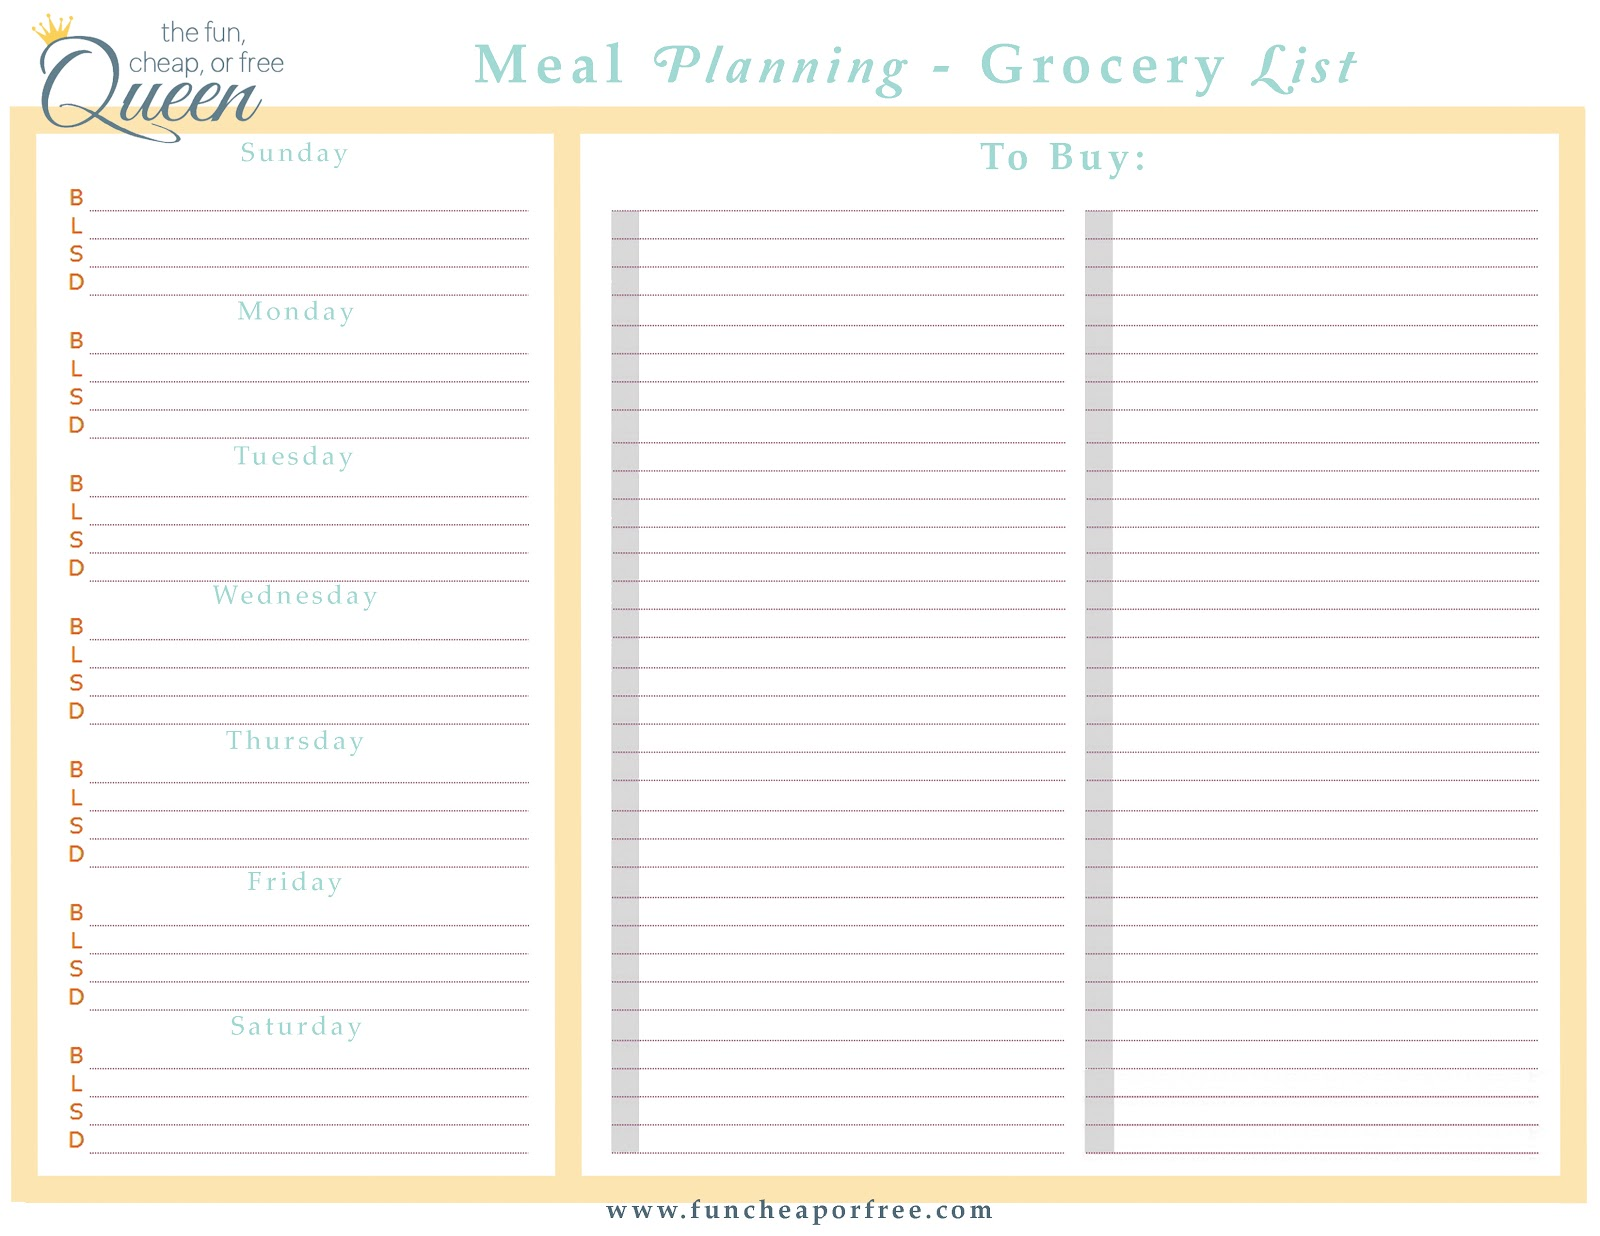 Easy meal plan structure with free printables! - Fun Cheap or Free